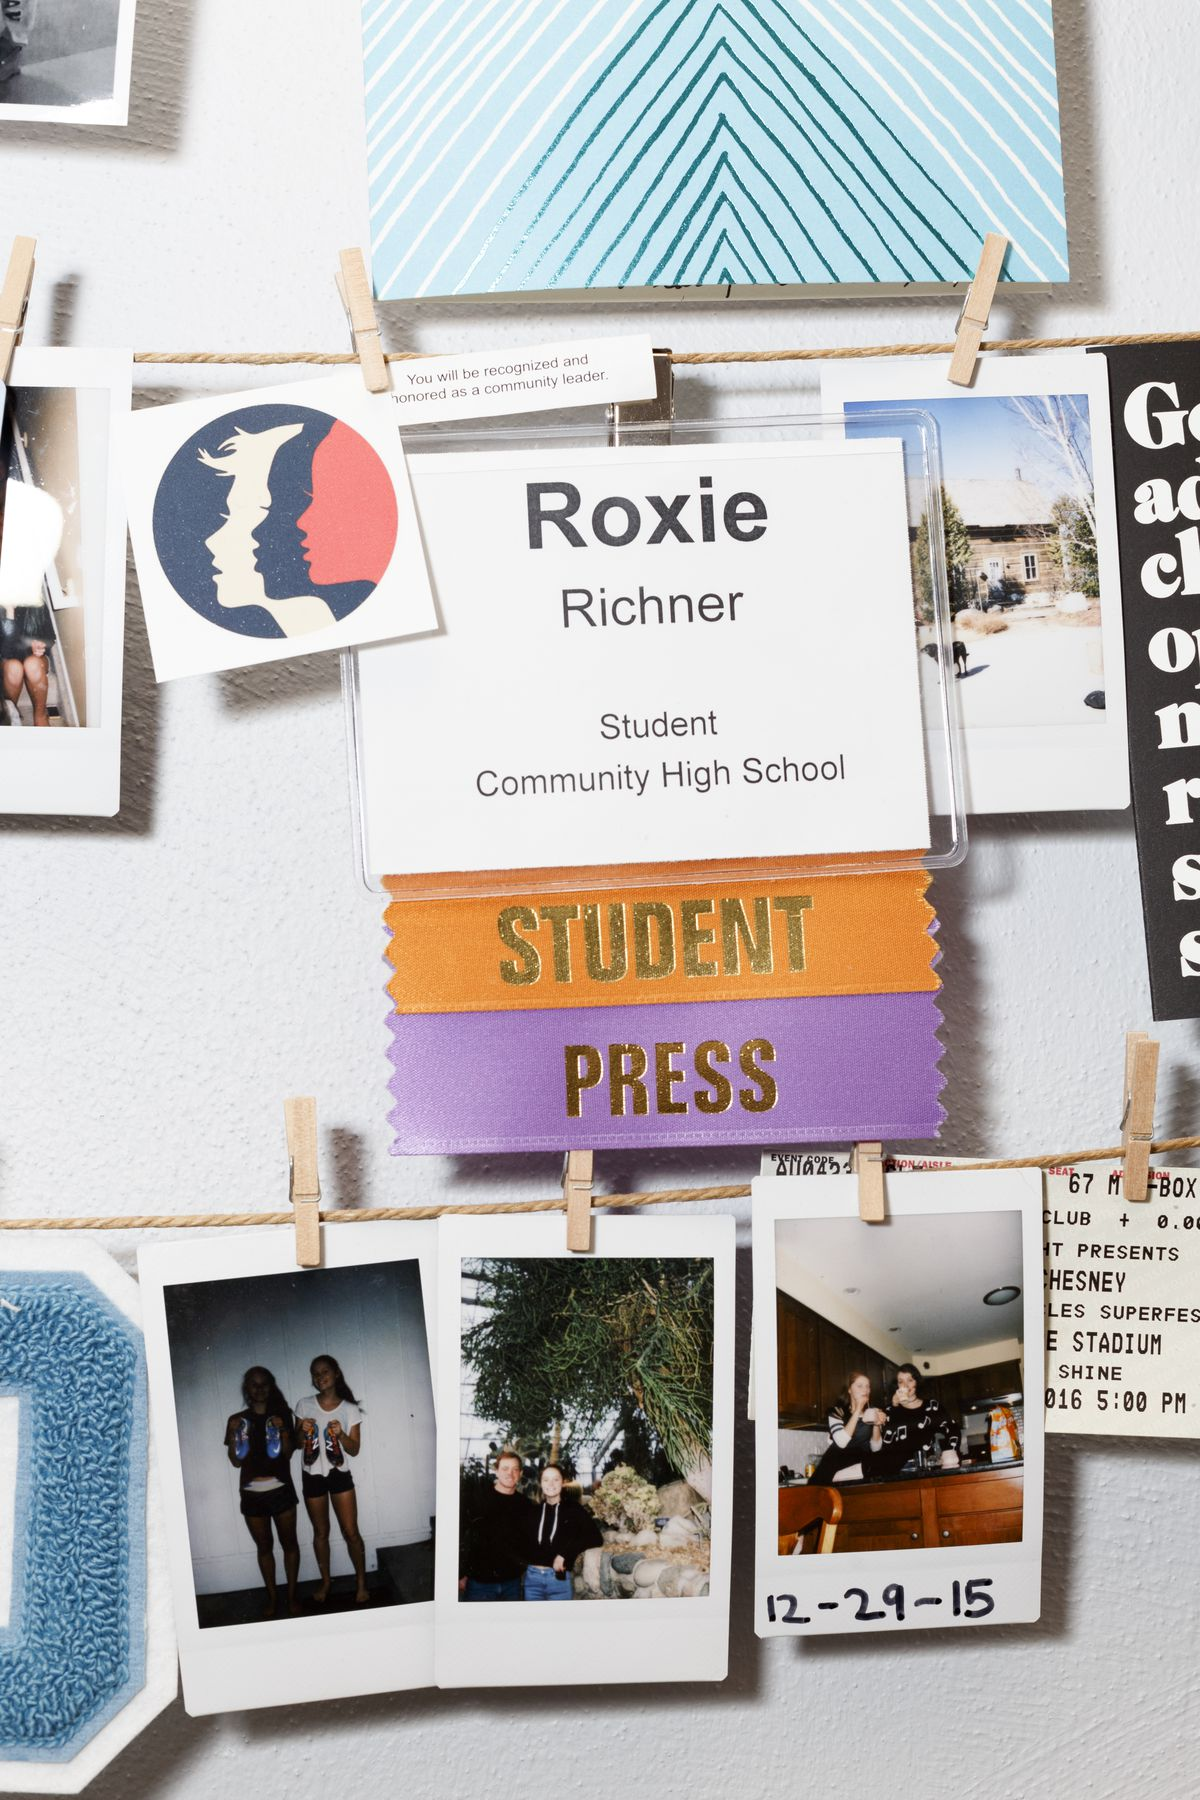 Richner is active in her school's student publication.